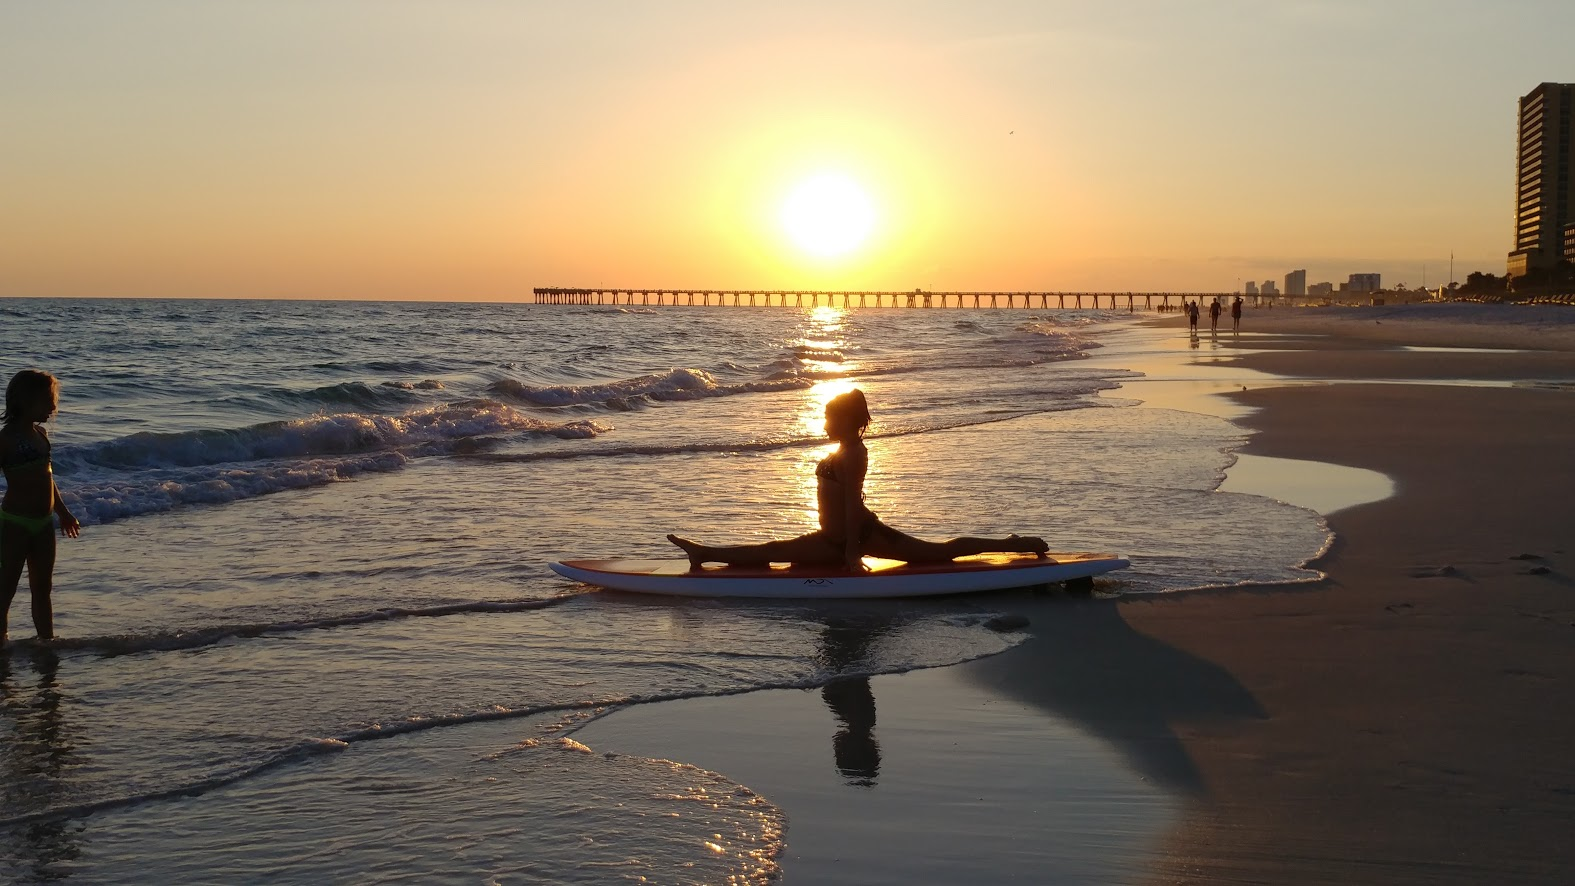 Condo rentals with paddle boarding